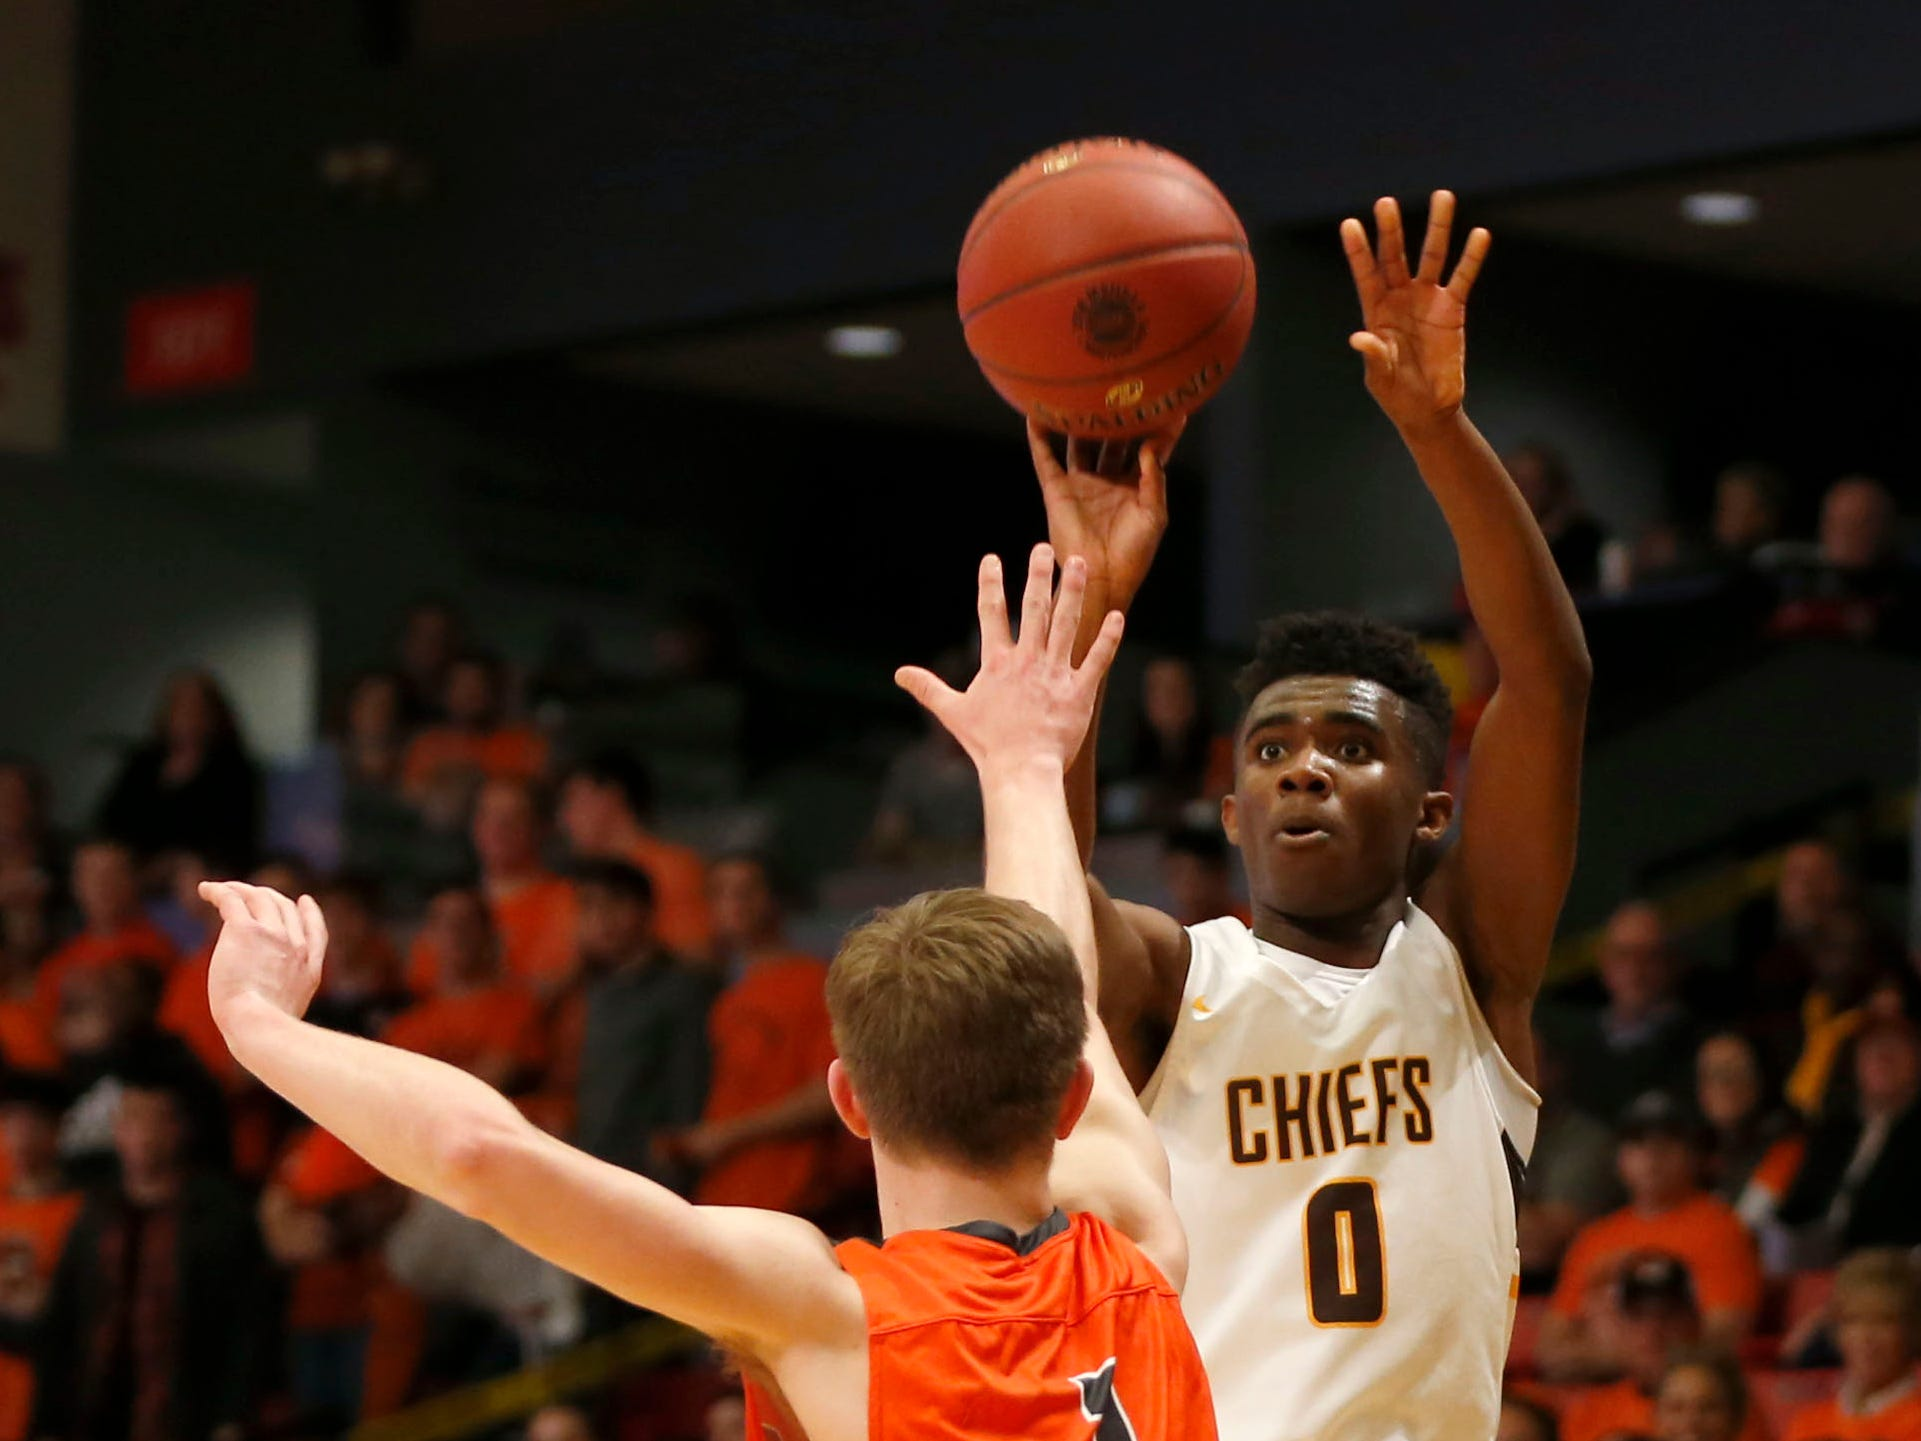 Kickapoo Chief Anton Brookshire shoots a field goal over Republic's Race Looney during Class 5 sectionals at the O'Reilly Family Event Center on Wednesday, March 6, 2019.